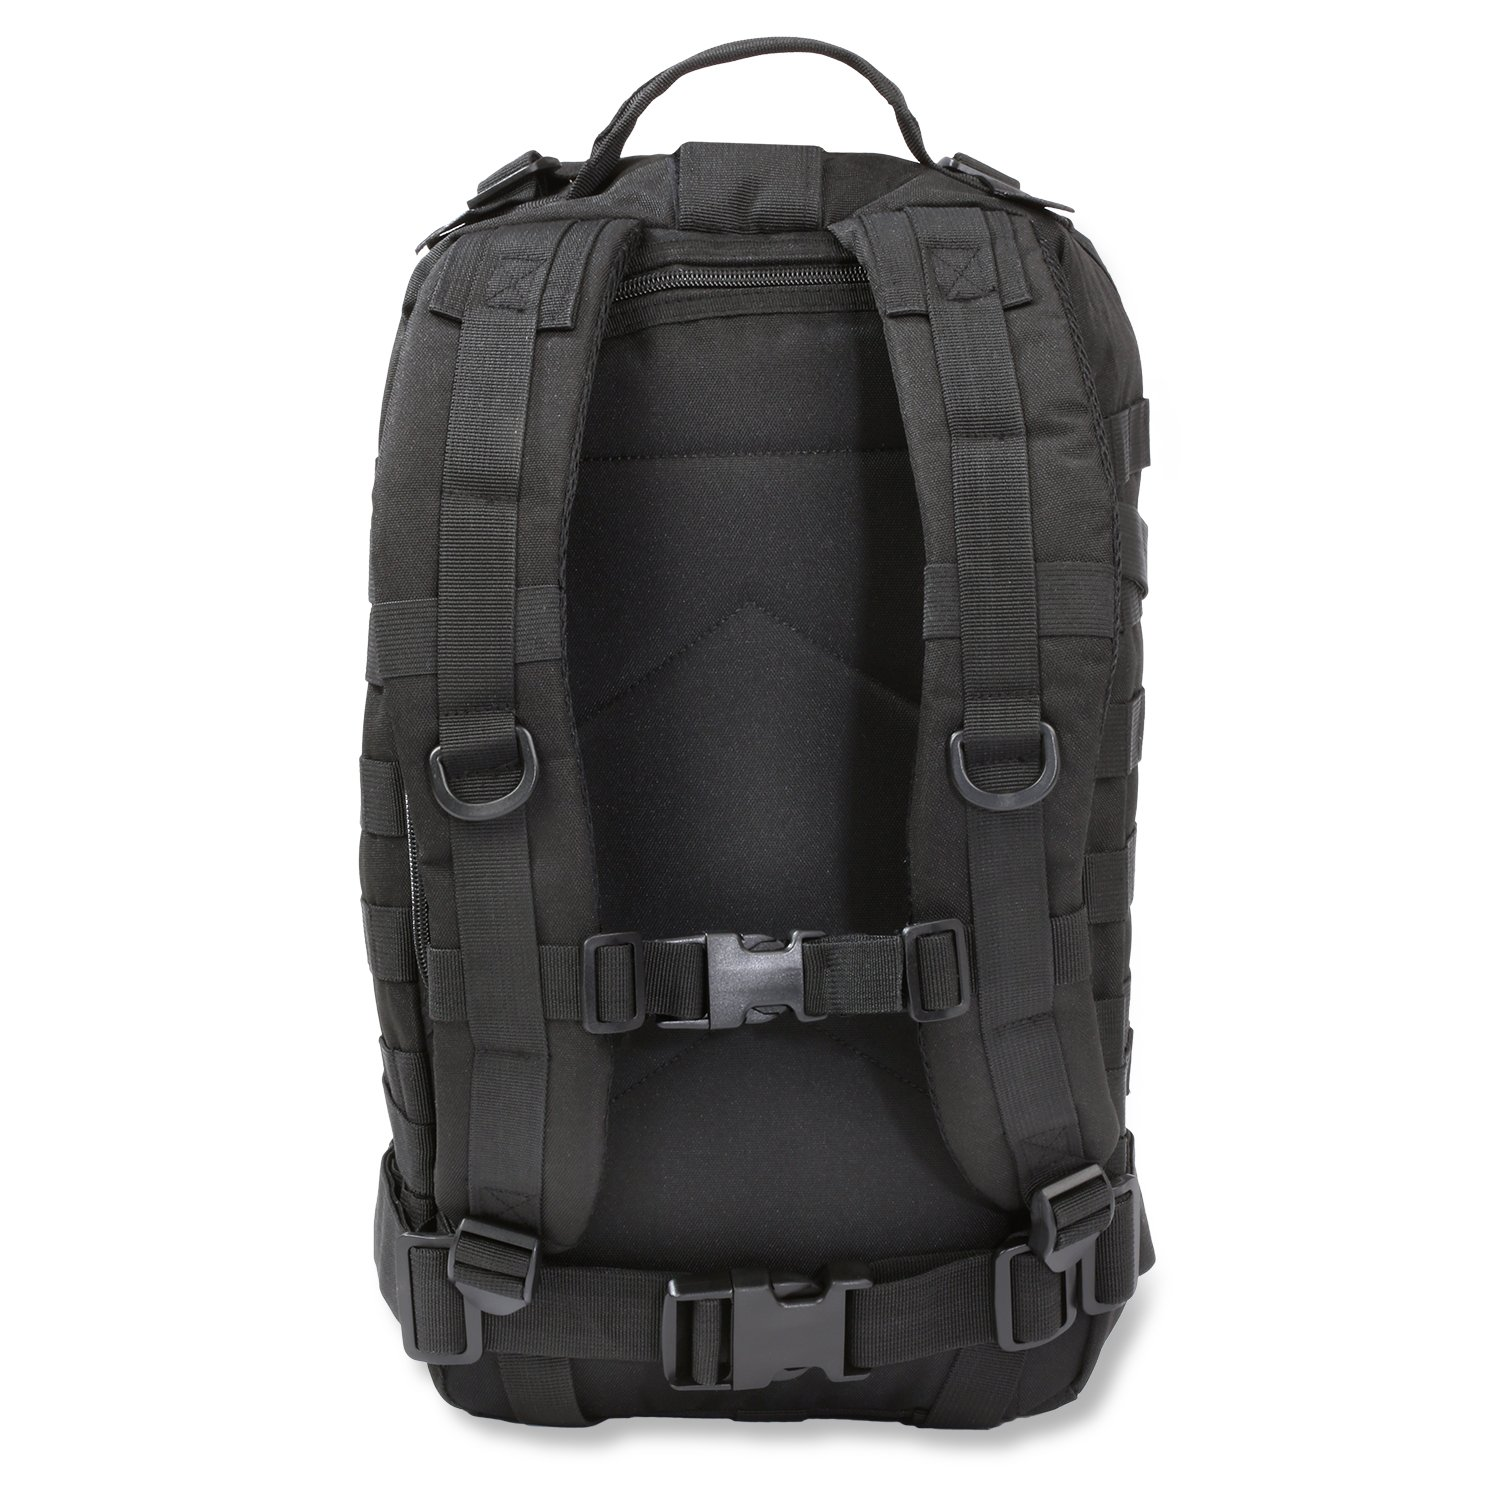 Amazon.com   Orca Tactical Military Molle Backpack Small Army SALISH 34L 1  or 2 Day Survival Bug Out Bag Rucksack Pack ... (Black)   Sports   Outdoors f17fa6e1ed